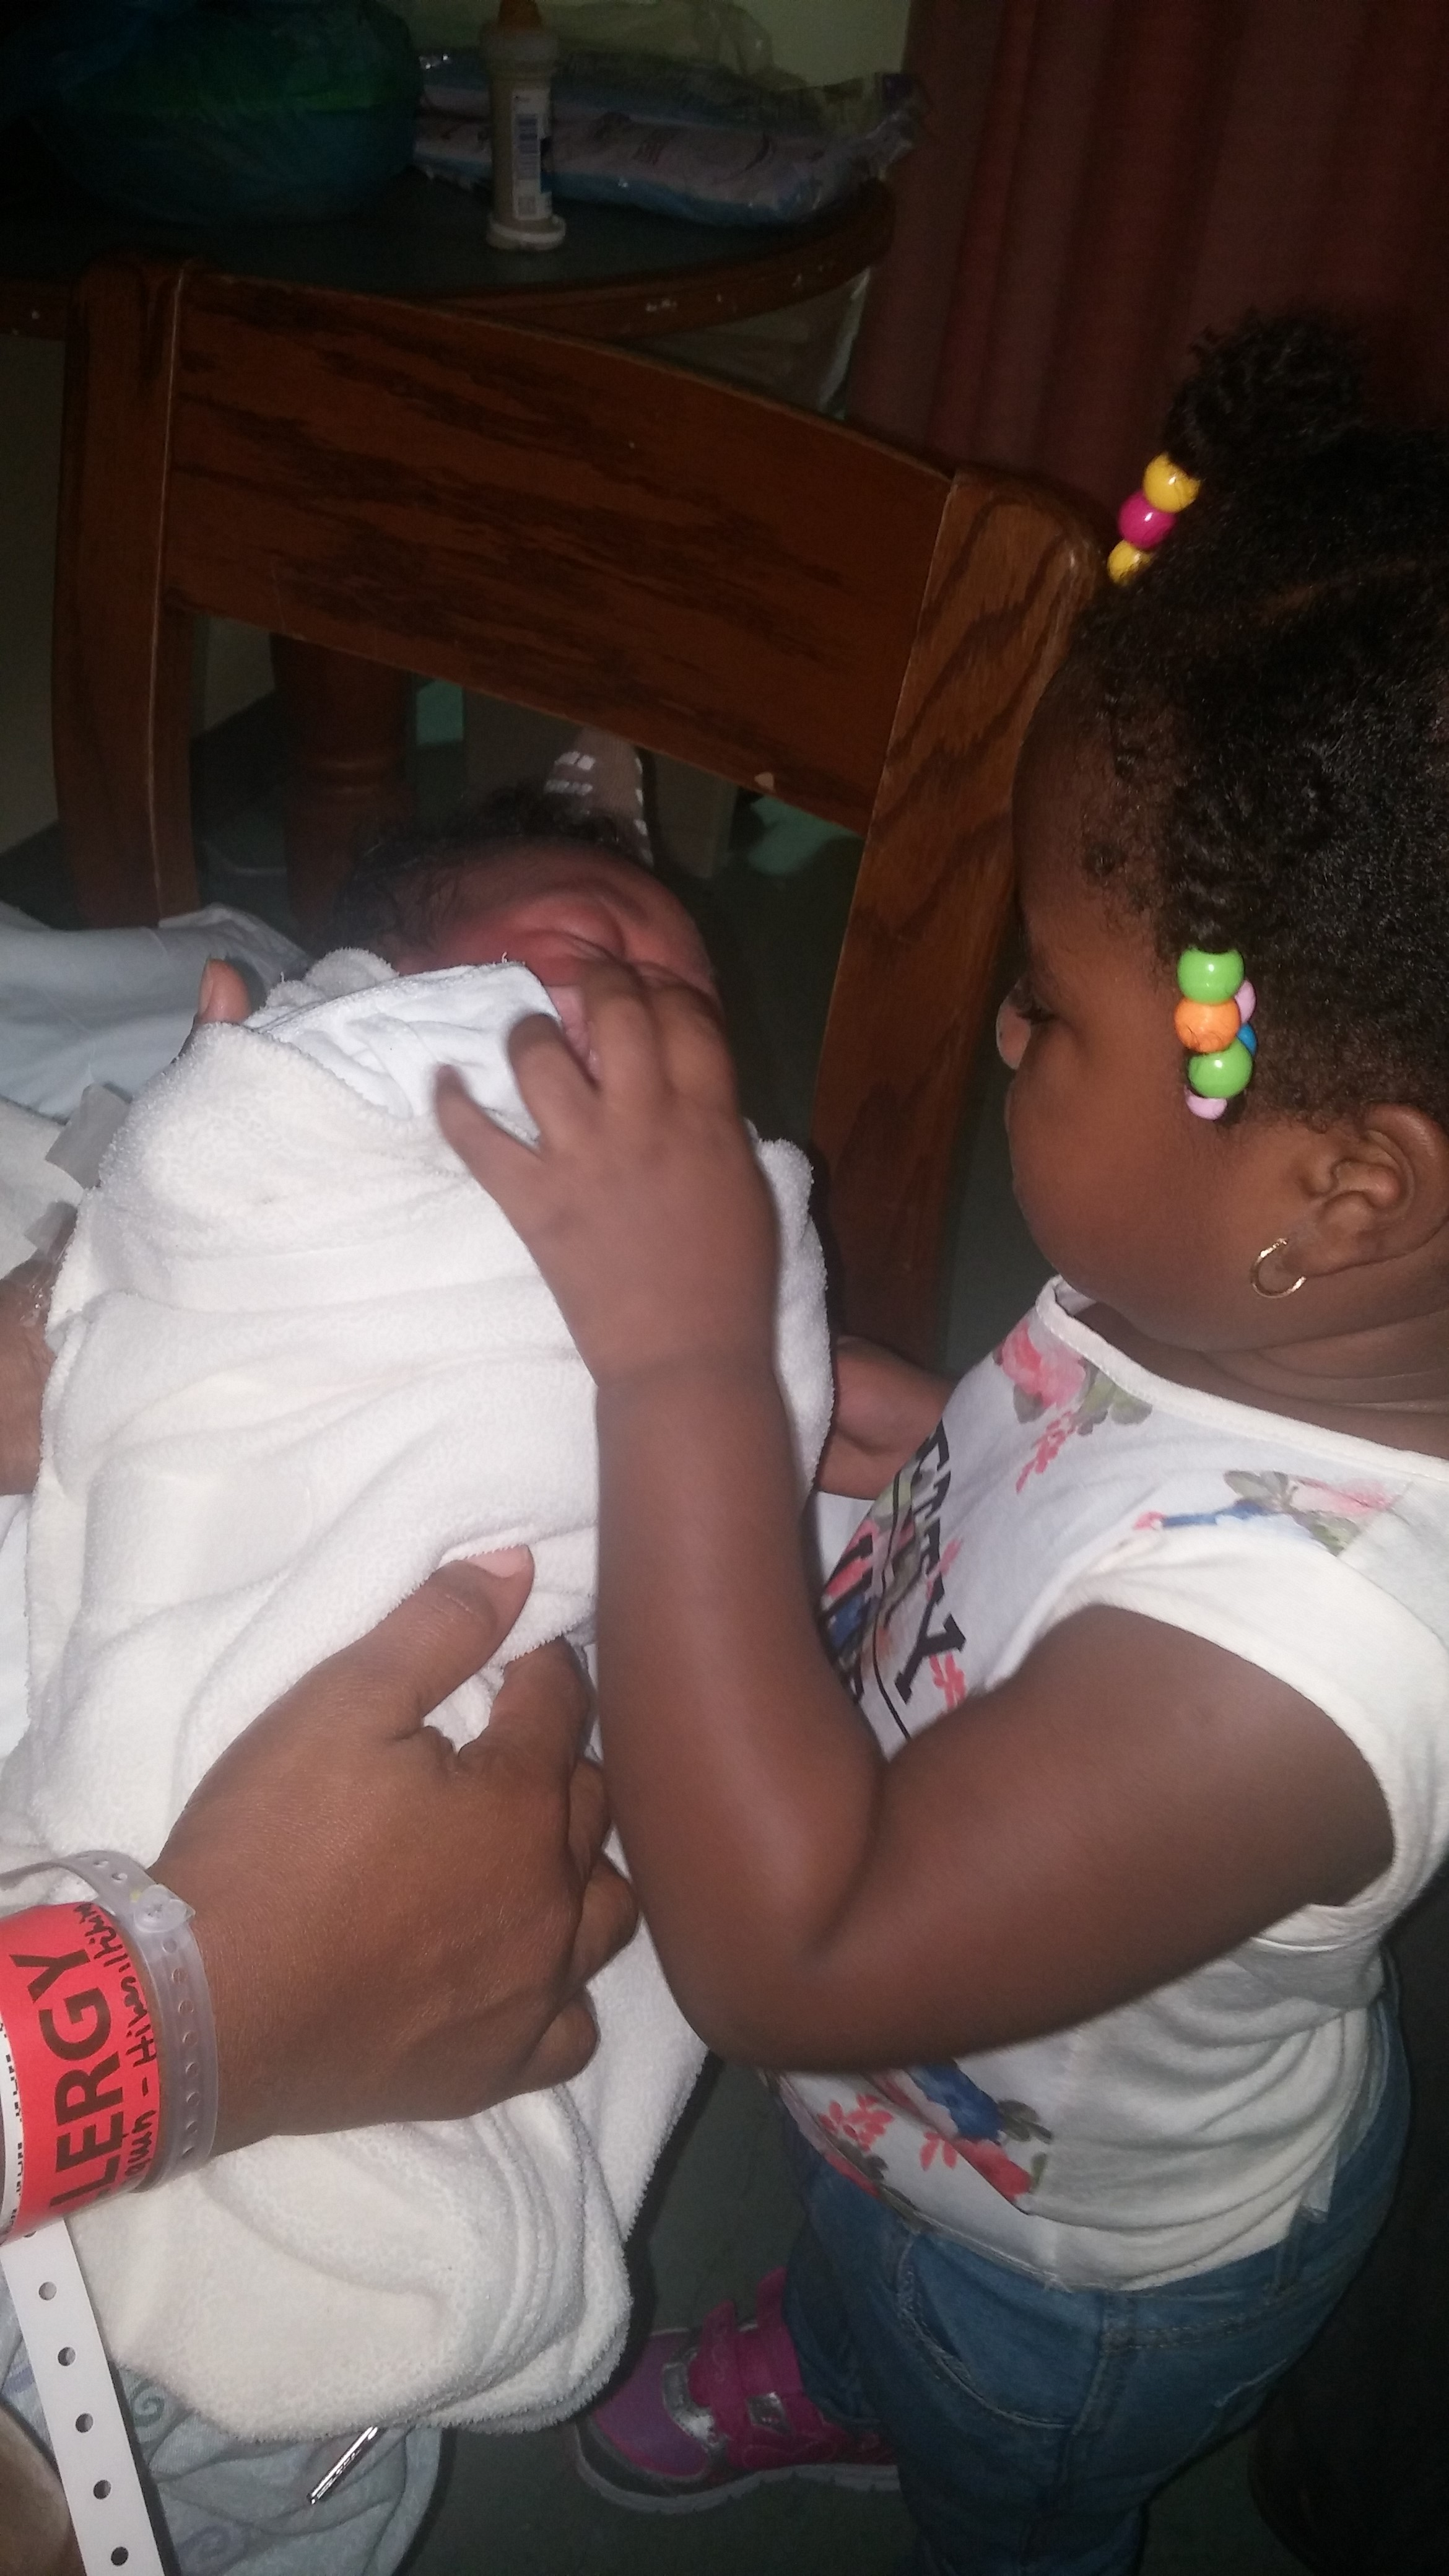 Agnes' daughter holds her baby brother, born in a Washington, D.C. hospital, for the first time. (J.Oni/VOA)